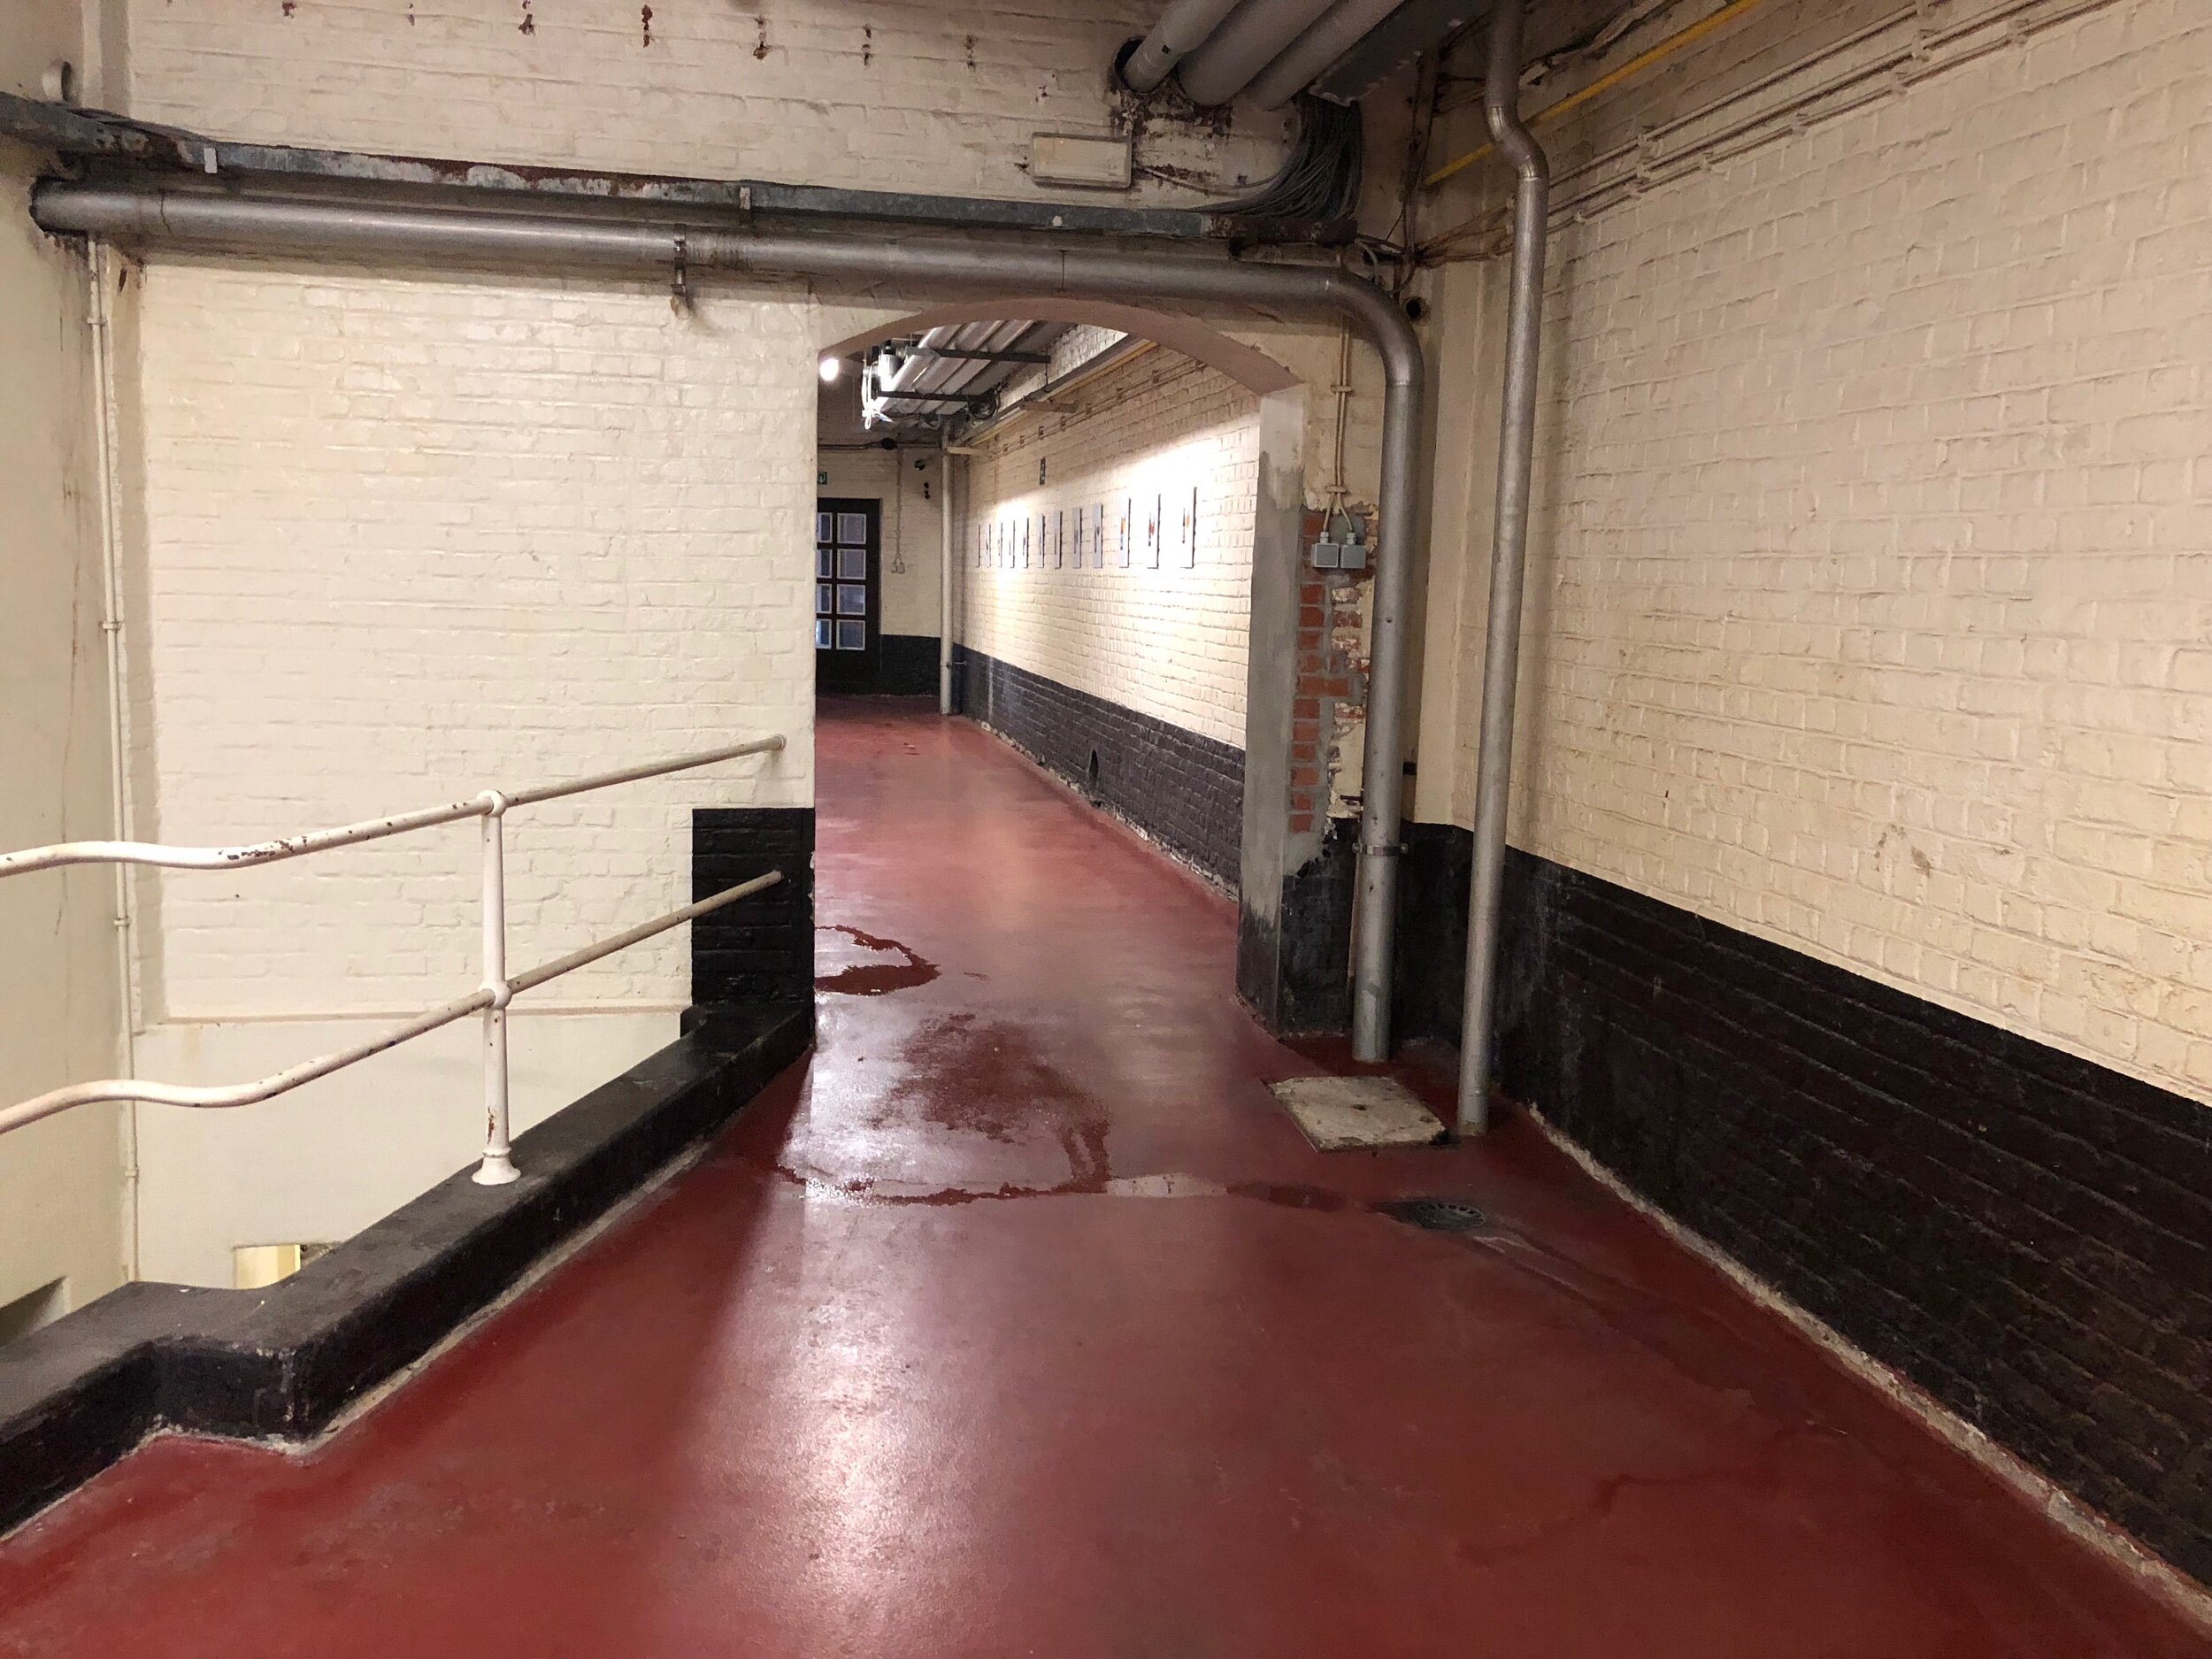 The entire brewery was scrubbed and neat as a pin—even this passageway between the brewhouse and cellars had recently been mopped.